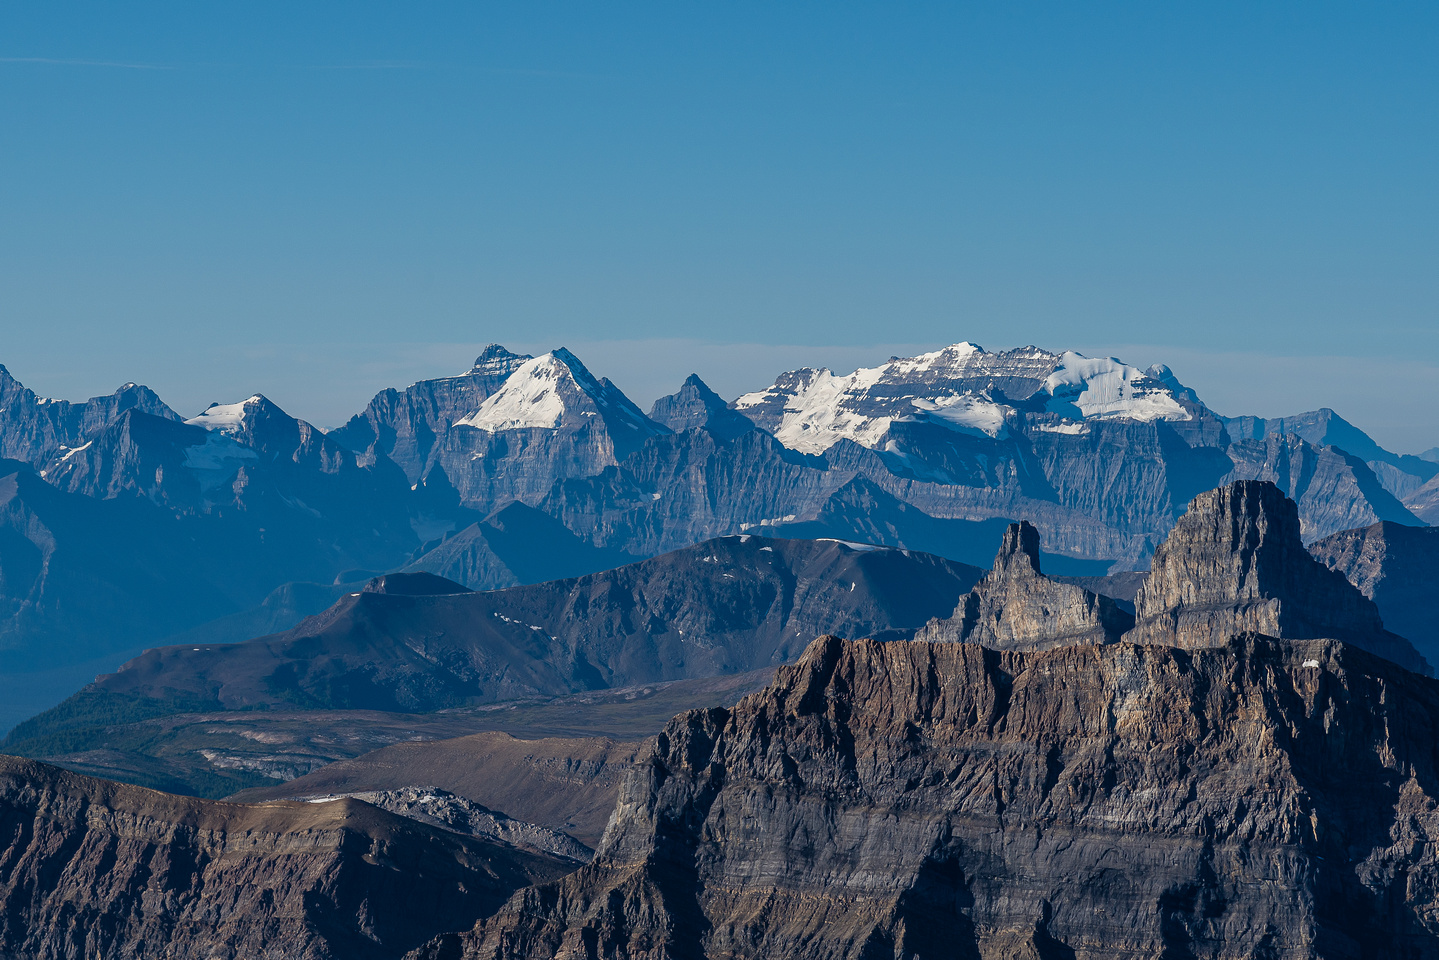 Minnow Peak and Molar Mountain in front of Mount Victoria.